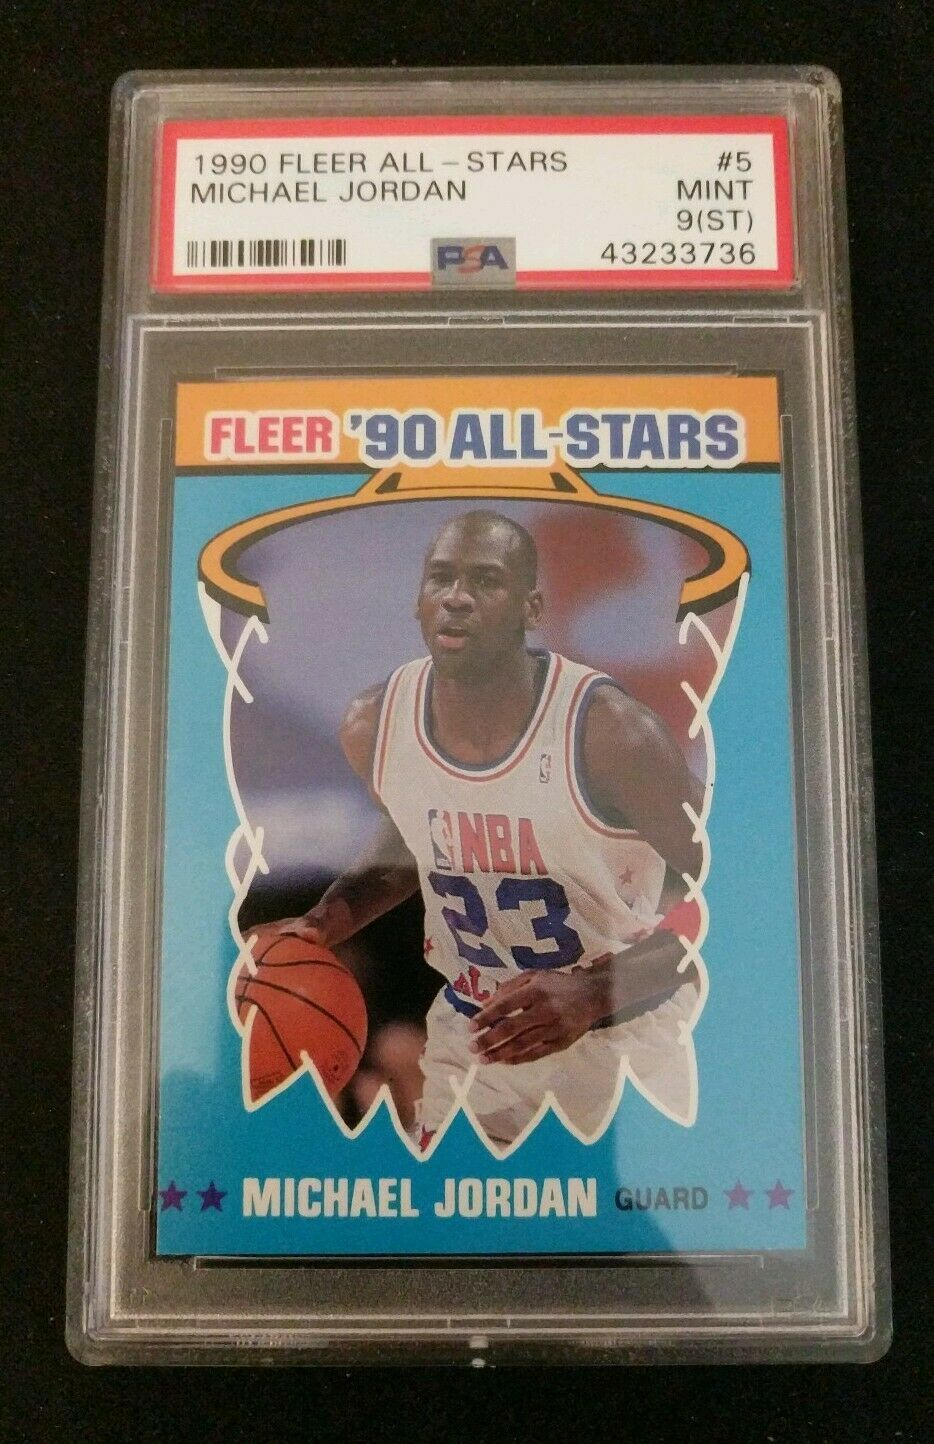 1990 Fleer All Stars Michael Jordan Sticker #5 MINT 9